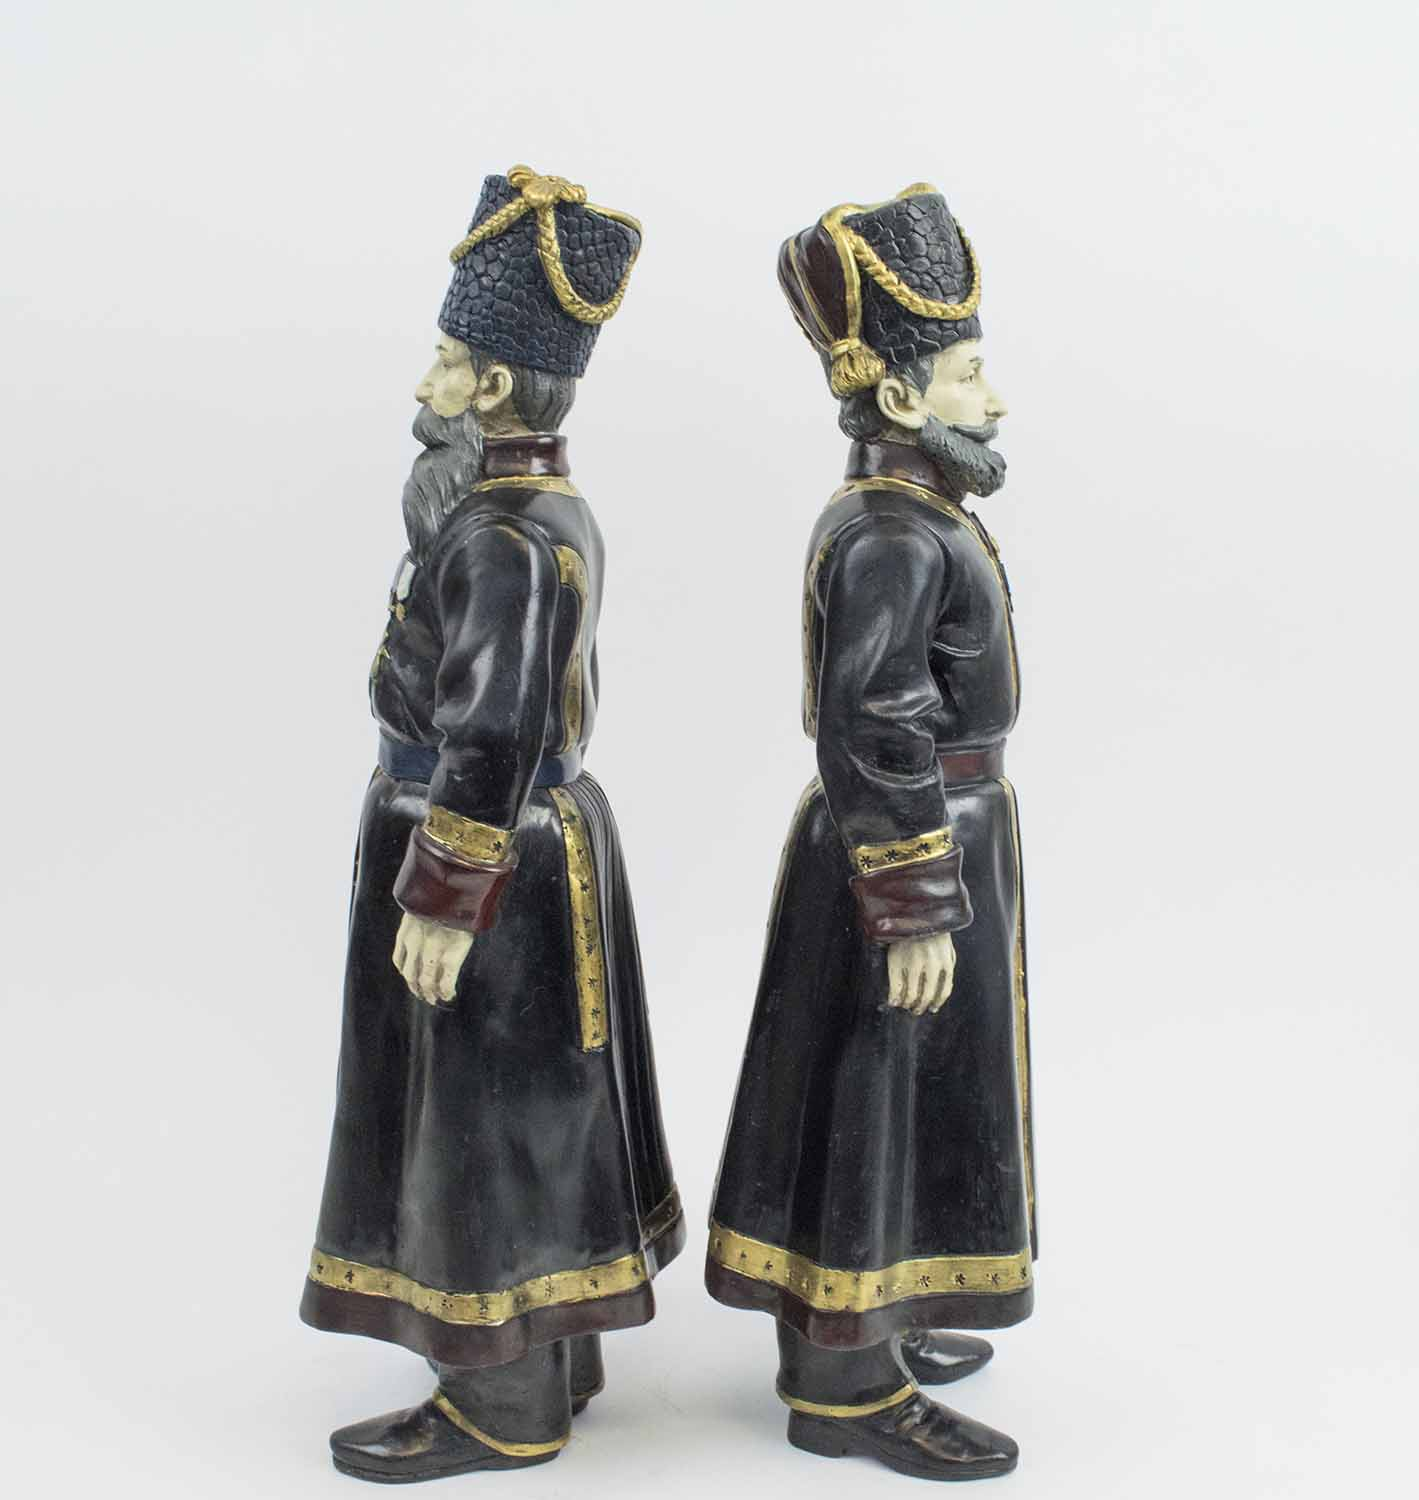 FABERGE MANNER BRONZE COSSACKS, a pair, Pustynnikov chamber Cossack 1894, - Image 3 of 6